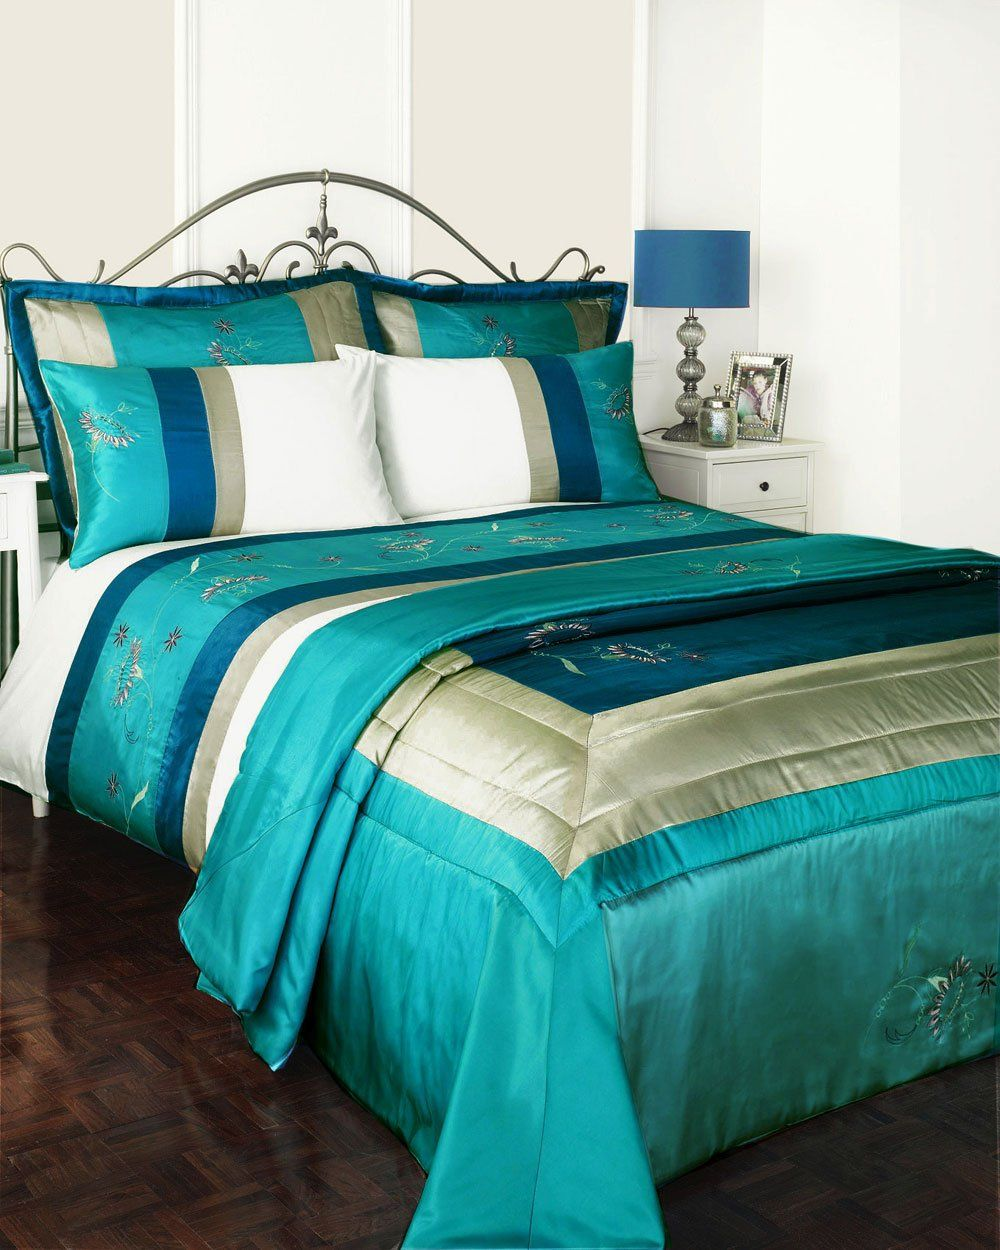 SUPER KING FULL BED SET TURQUOISE TEAL DUVET COVER